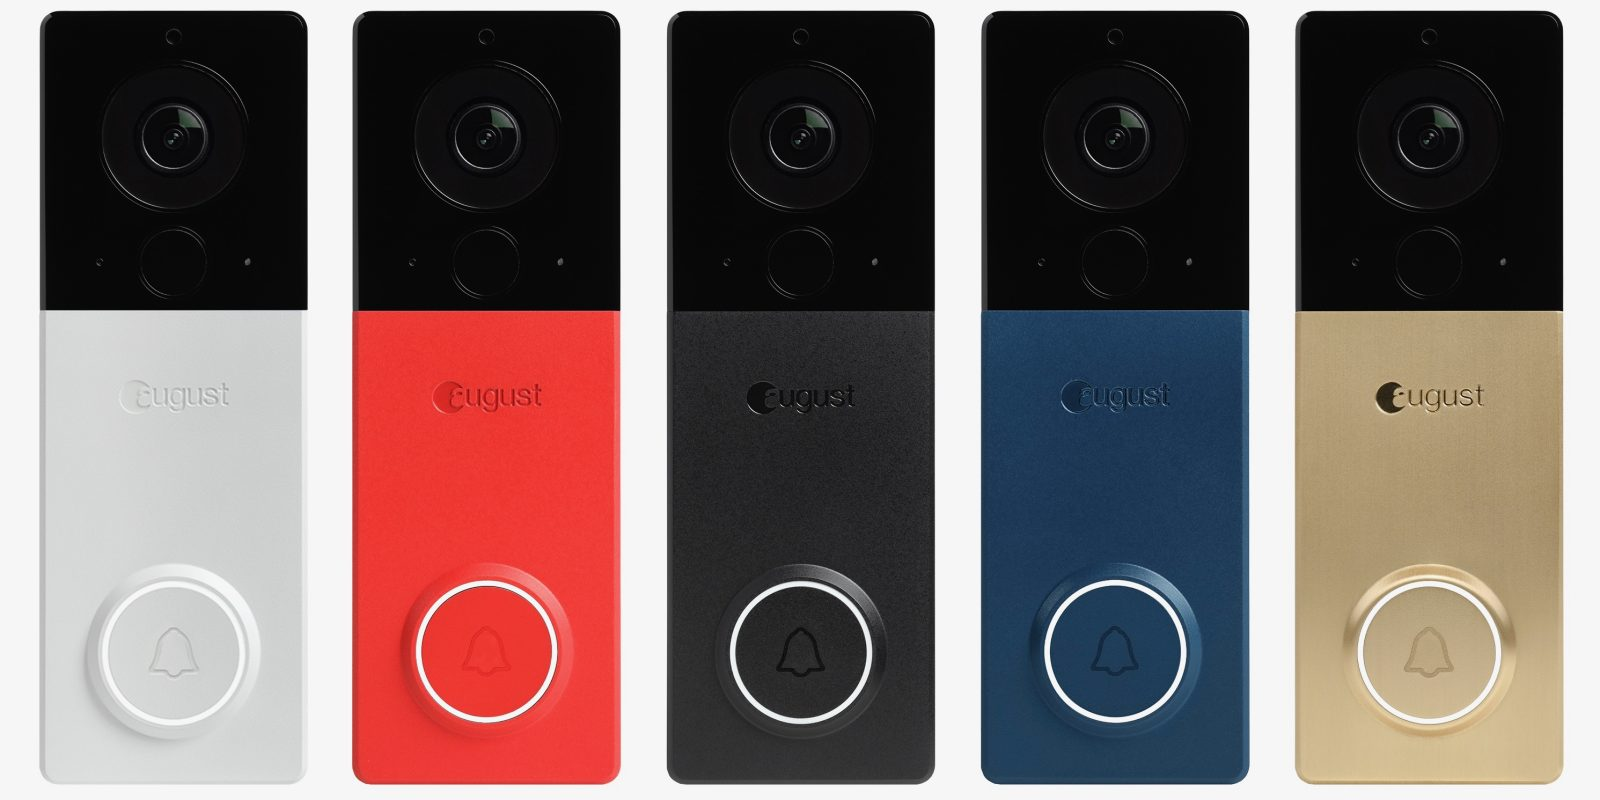 Astonishing Update Now Available For 230 August View Wire Free Video Doorbell Wiring Digital Resources Funapmognl